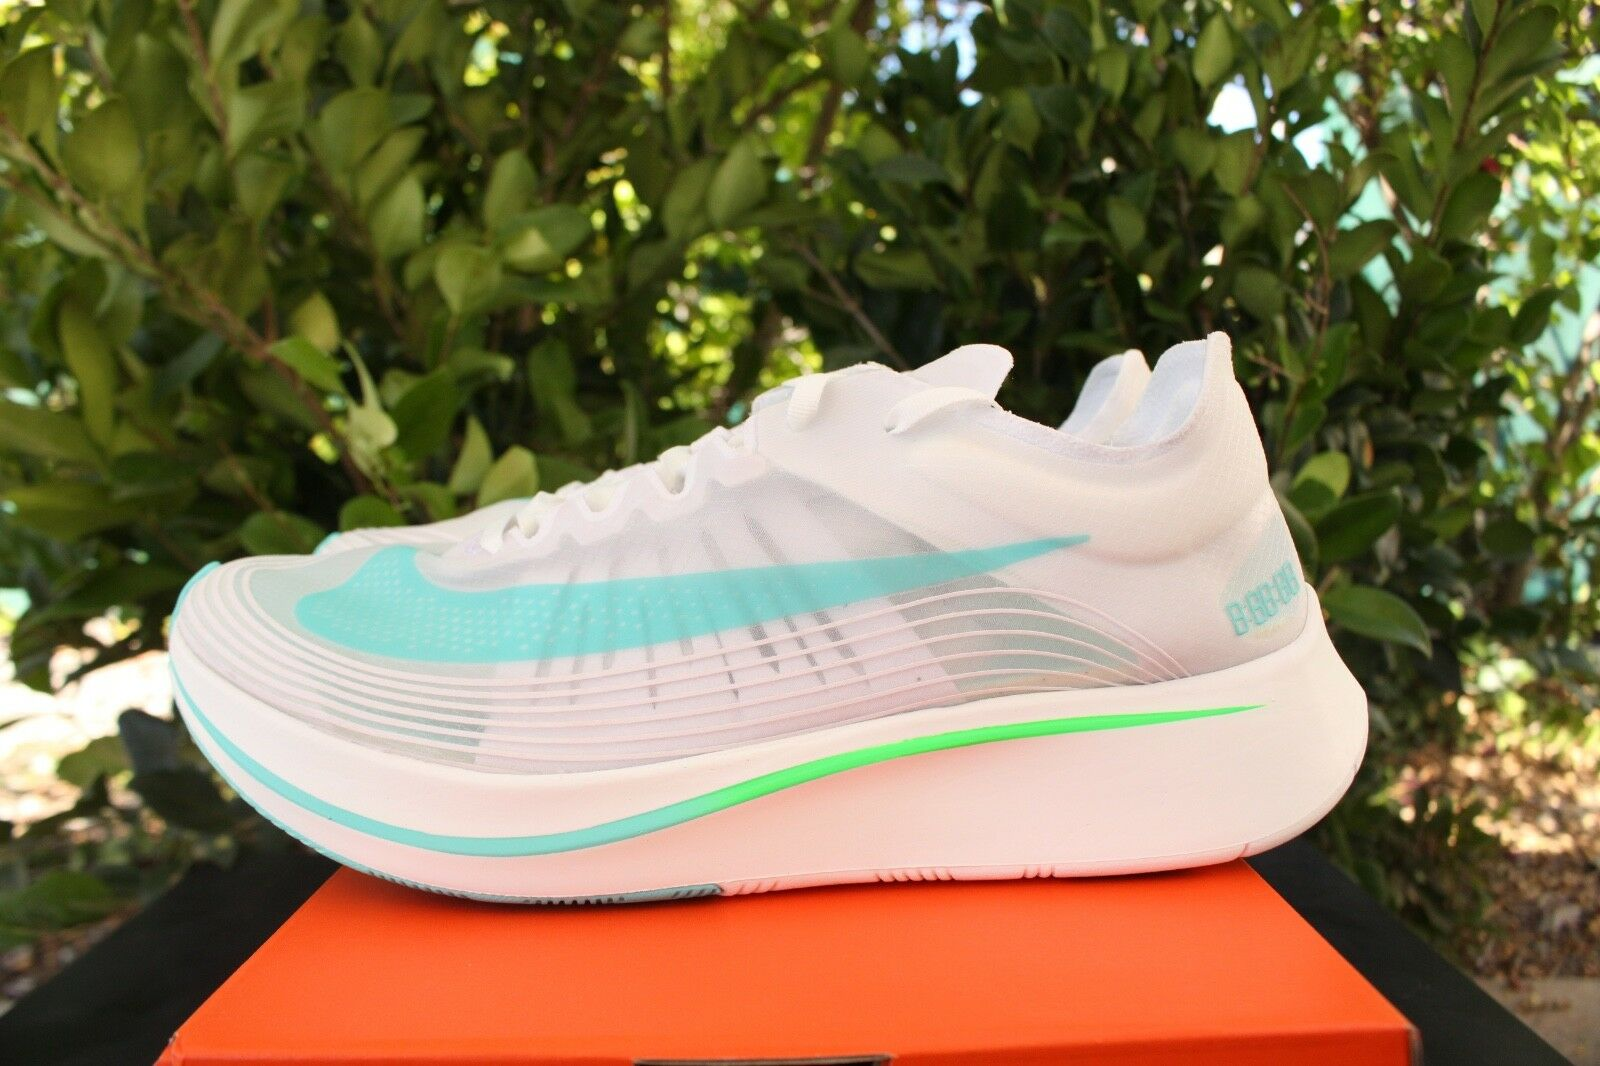 NIKE ZOOM FLY FLY FLY SP SZ 11.5 WHITE RANGE GREEN AJ9282 103 41ec99